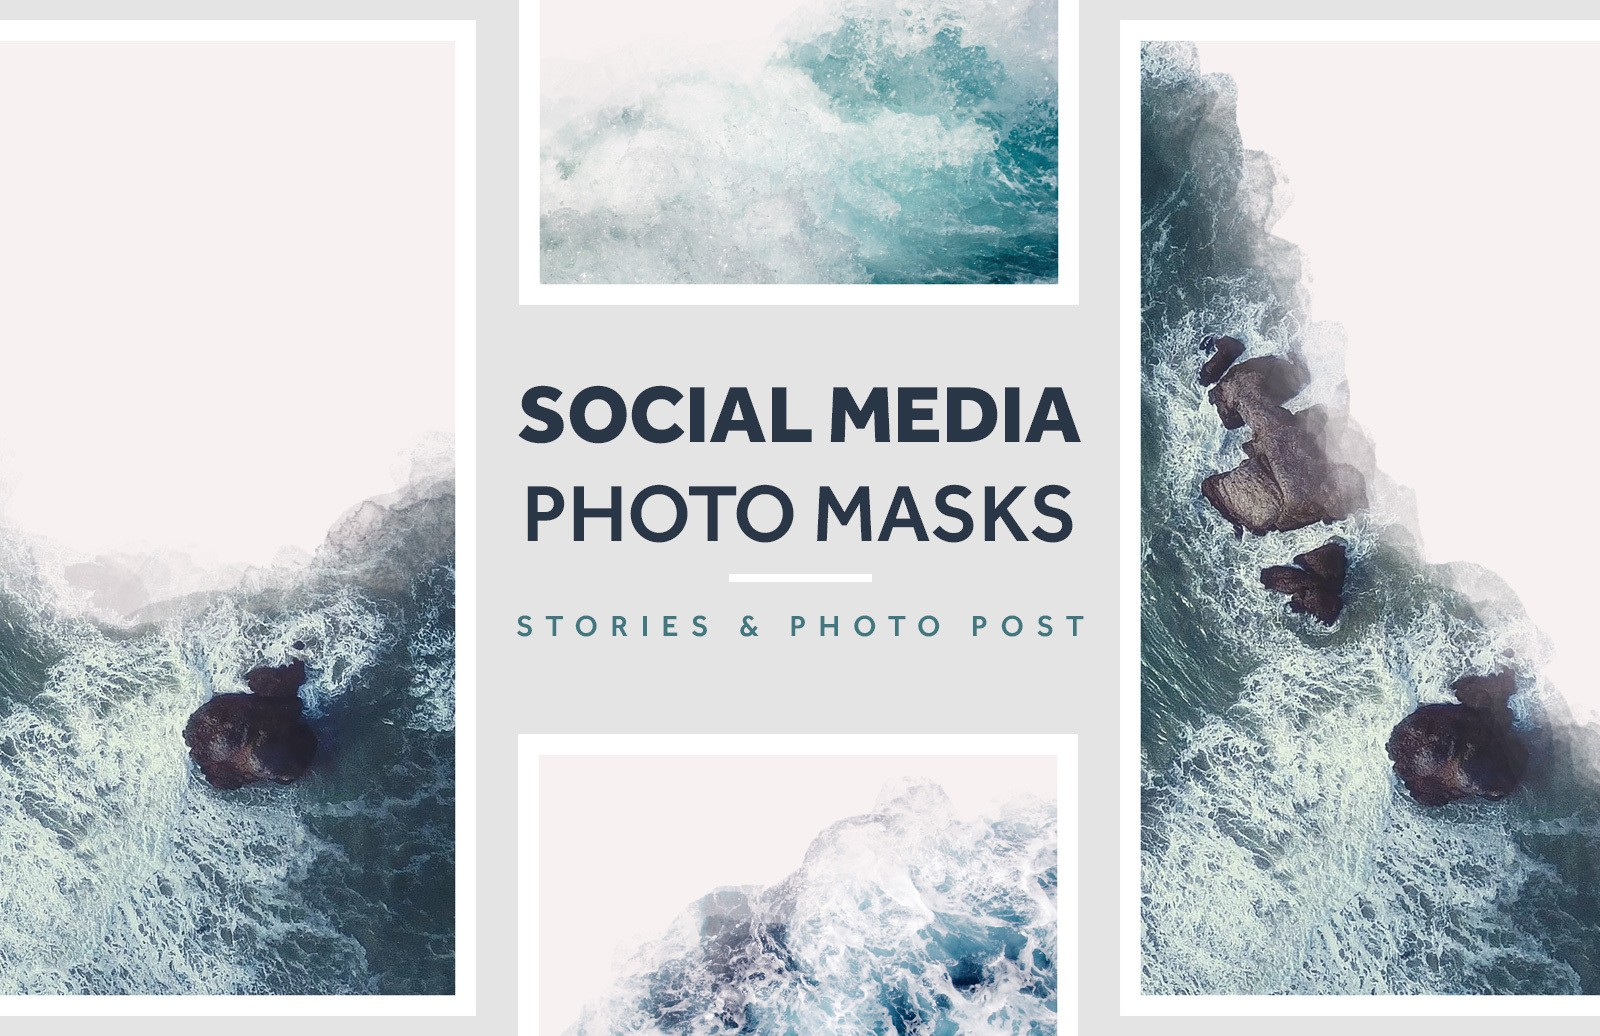 Social Media Photo Masks